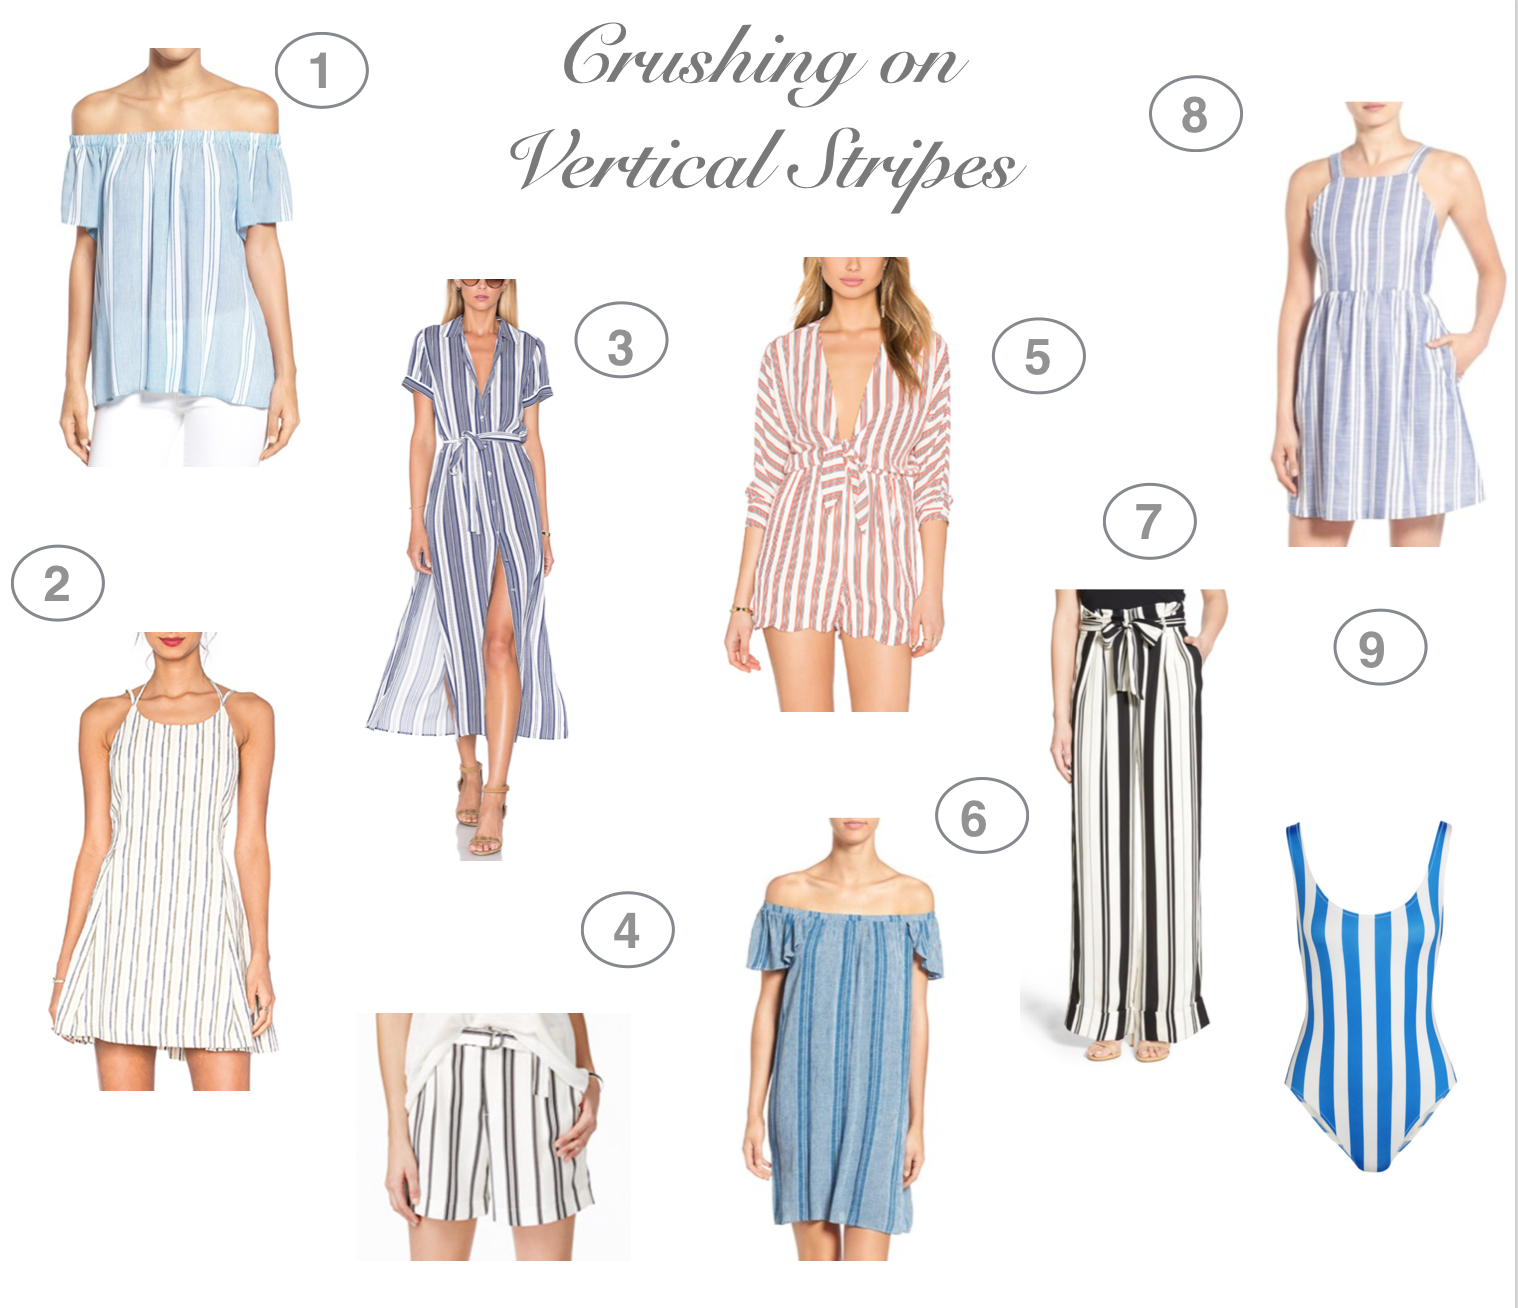 Dress Up Buttercup // A Houston-based fashion and inspiration blog developed to daily inspire your own personal style by Dede Raad | Crushing on Vertical Stripes